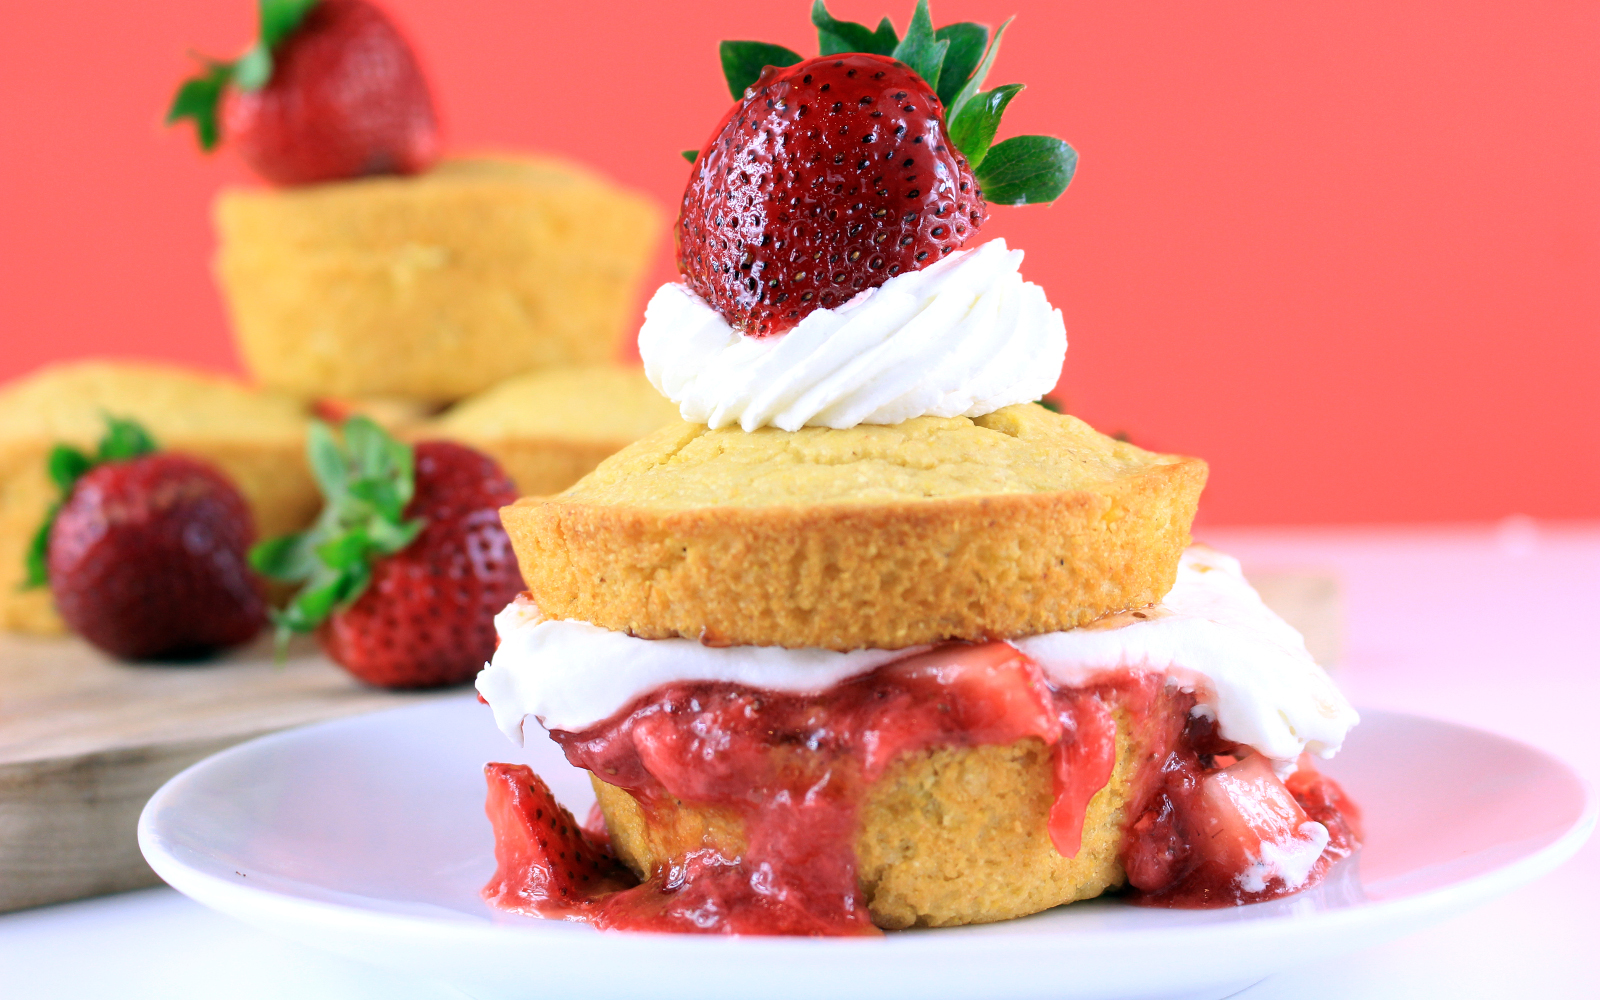 Vegan Strawberry Corn Cakes With Coconut Whipped Cream and fresh fruit